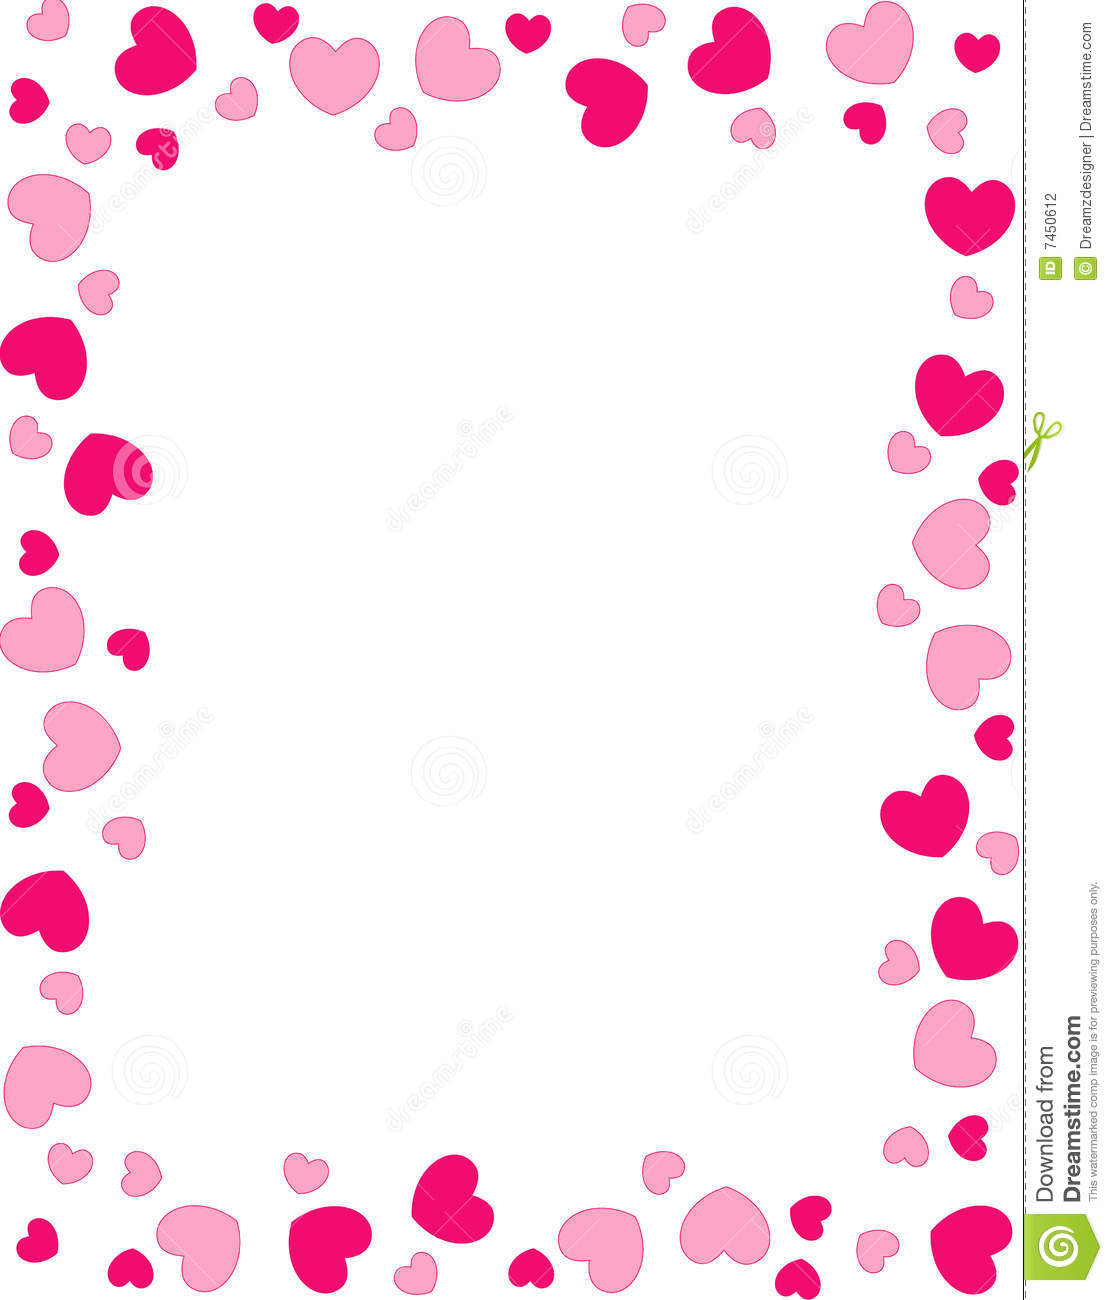 love abstract heart border hi stock photo love red hearts border frame    Heart Border Horizontal